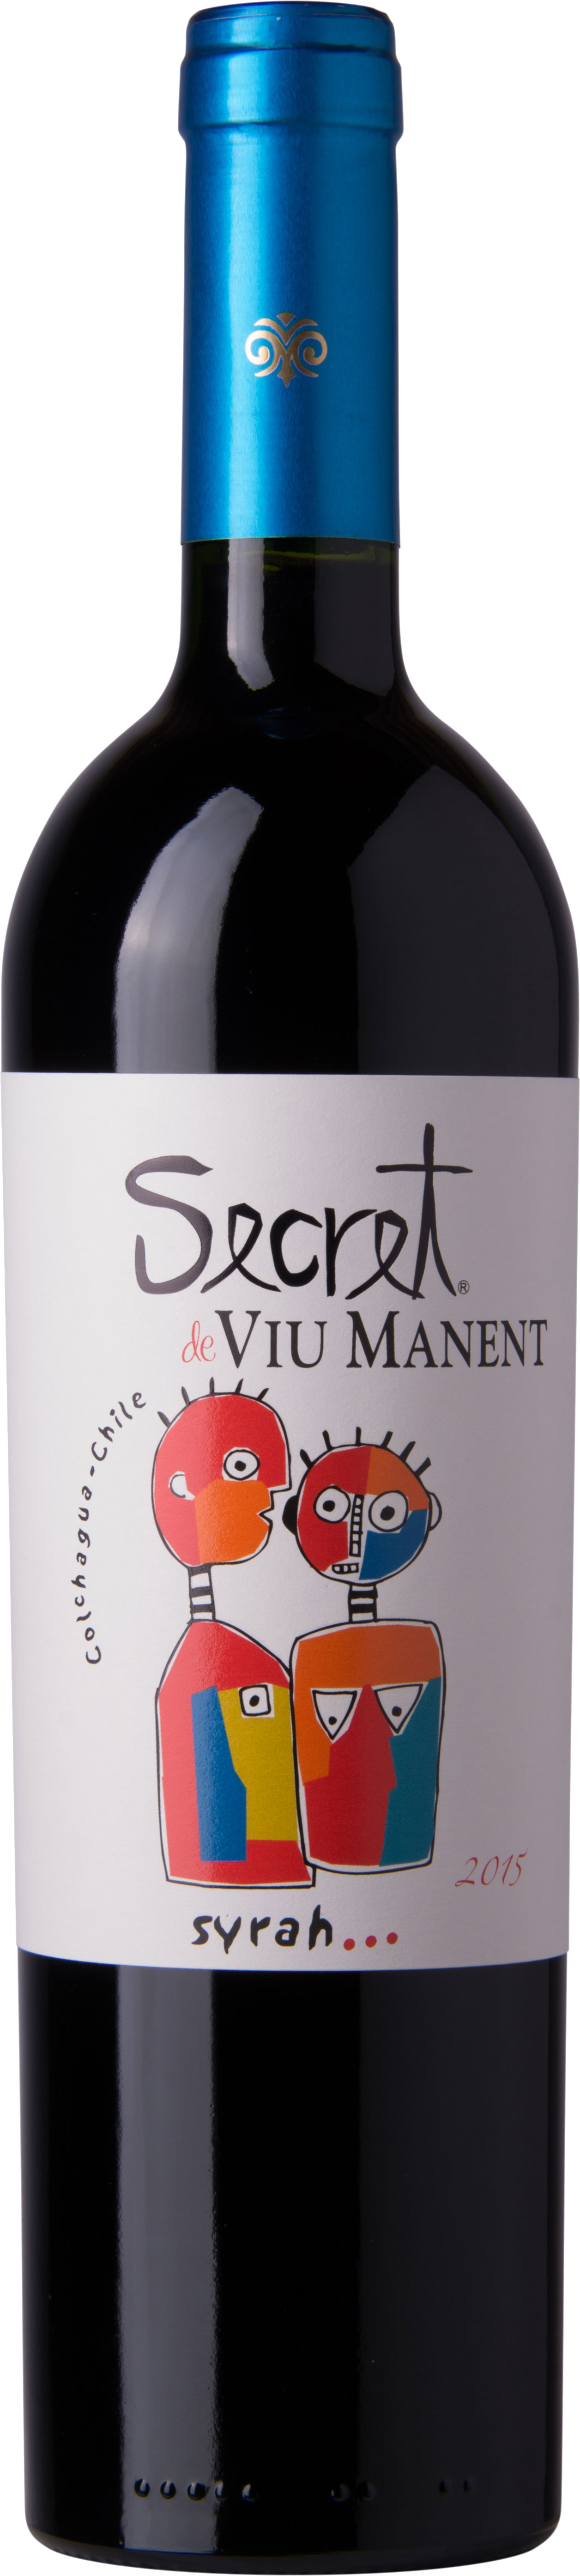 Viu Manent - Secret Syrah 2015 6x 75cl Bottles